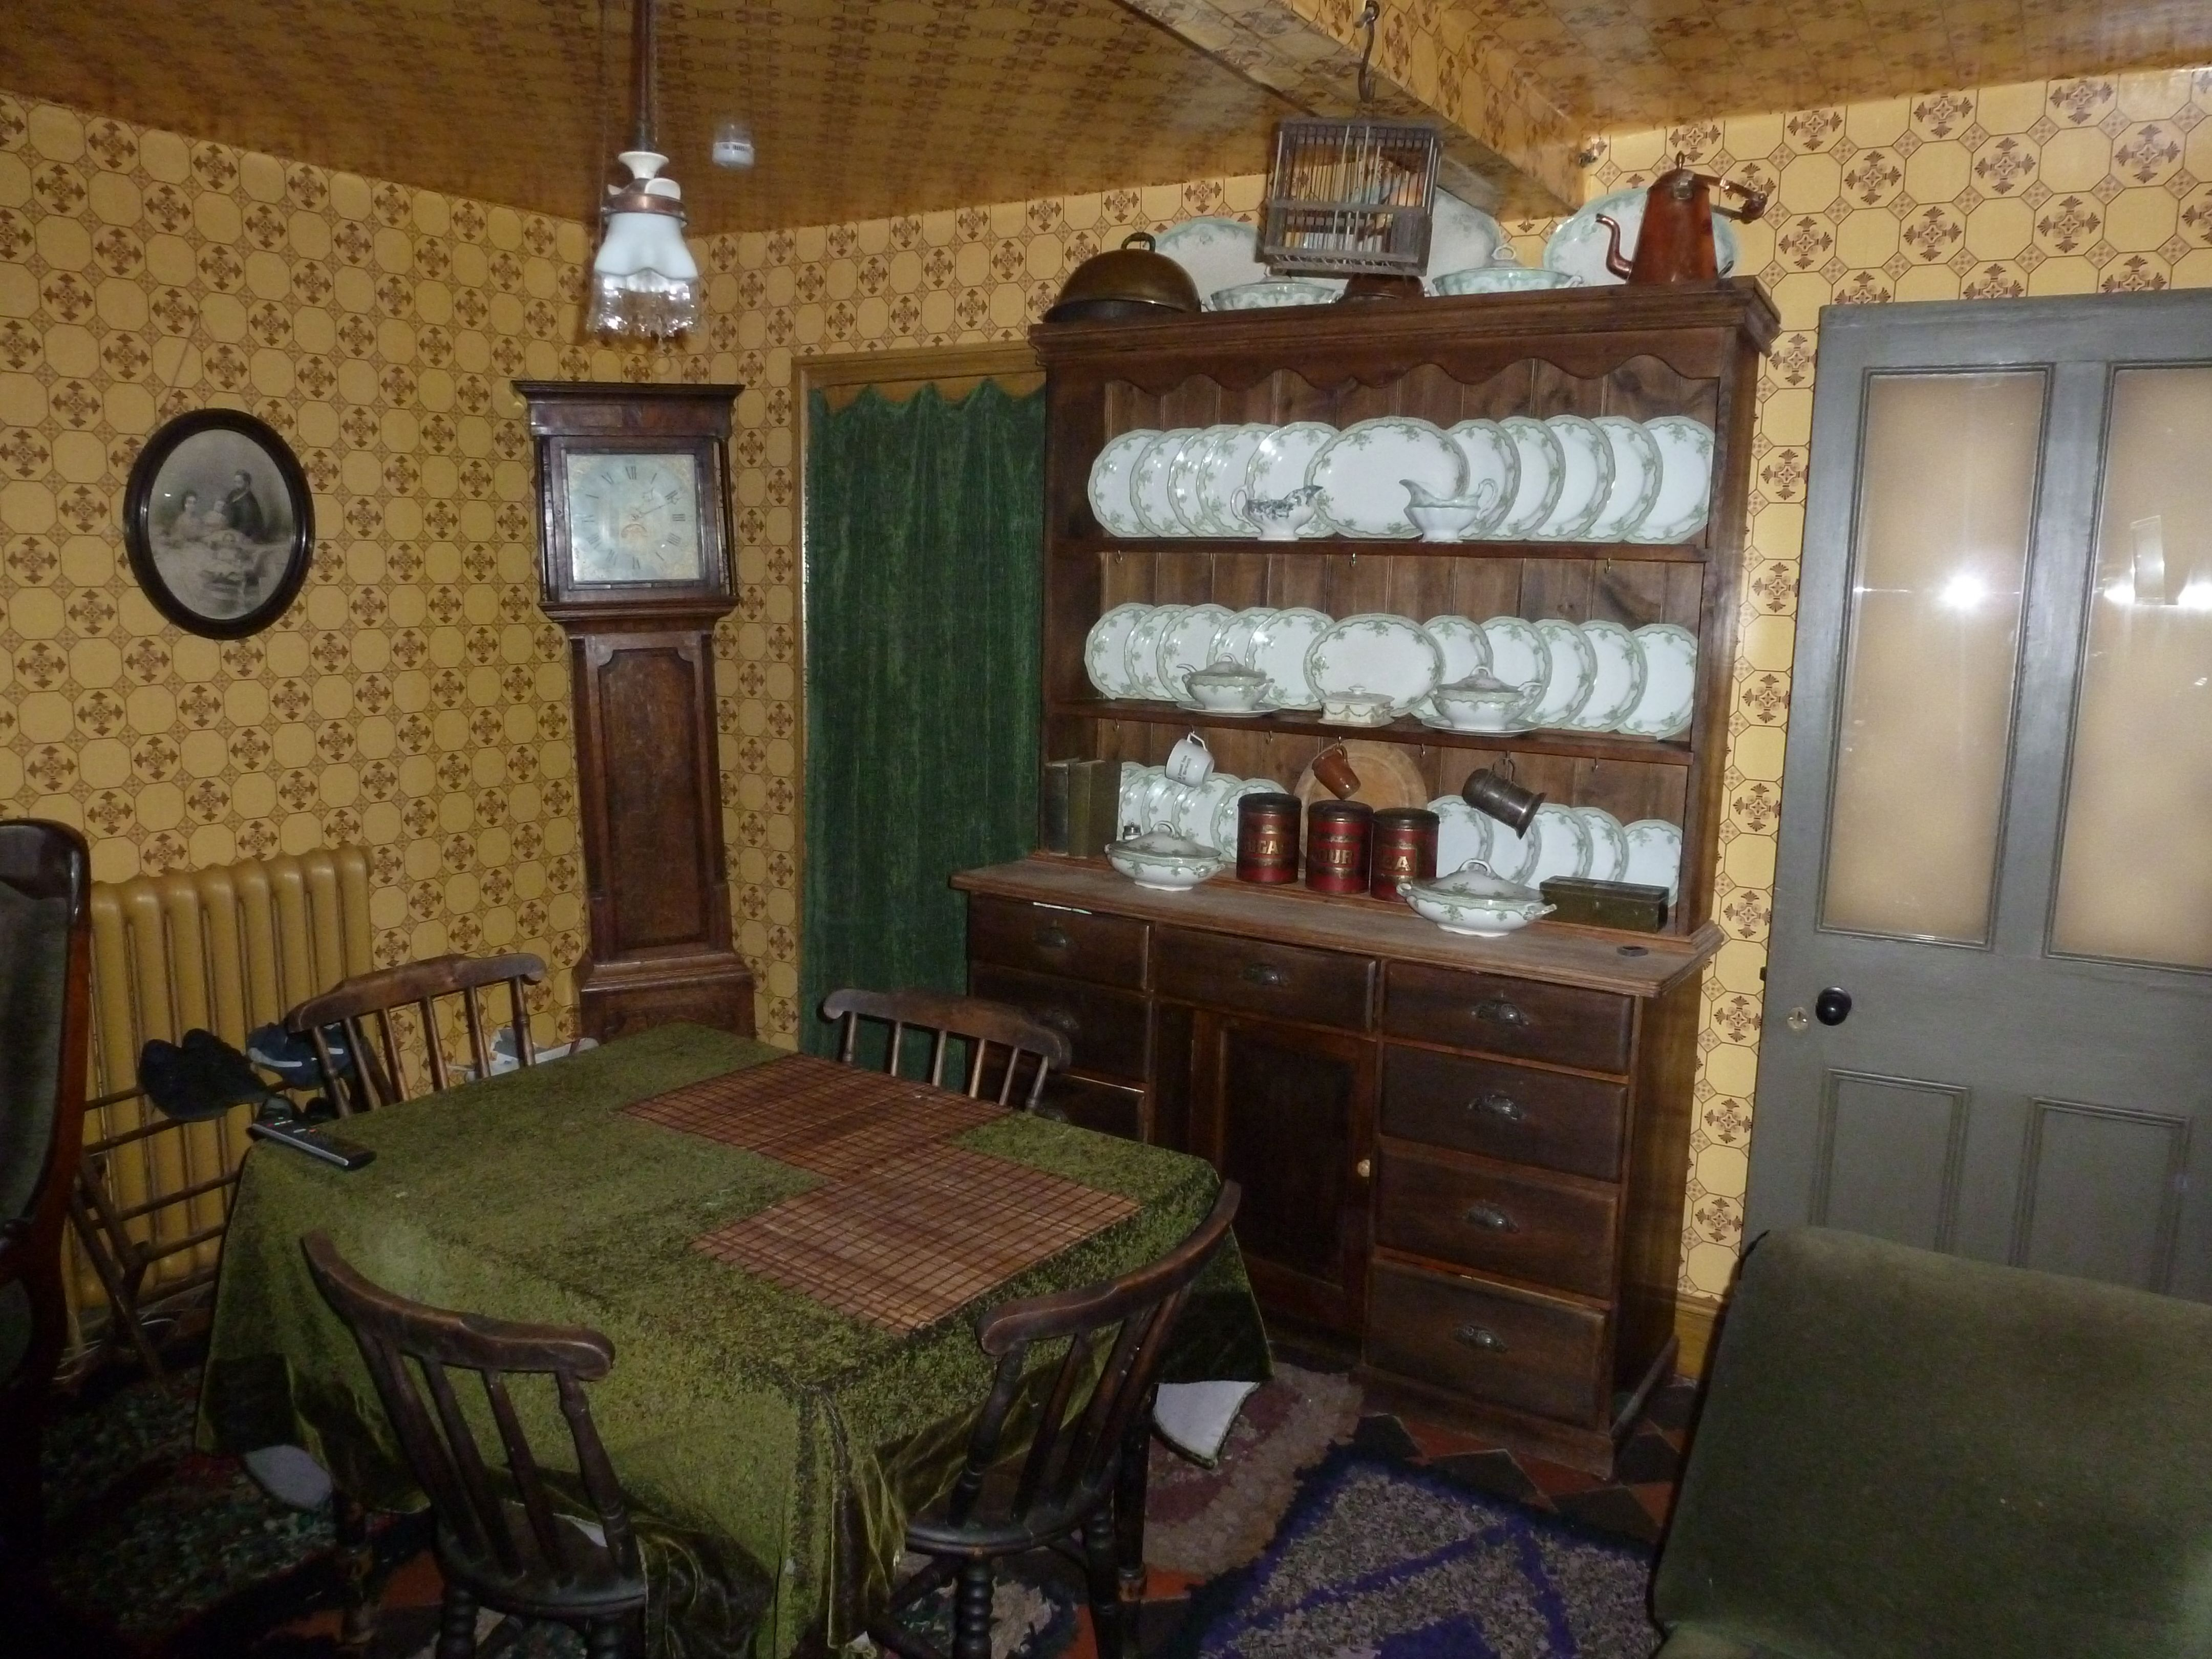 Recreation of working class living kitchen with reproduced sanitary wallpaper based on found fragements in the room and kitchen dresser in view